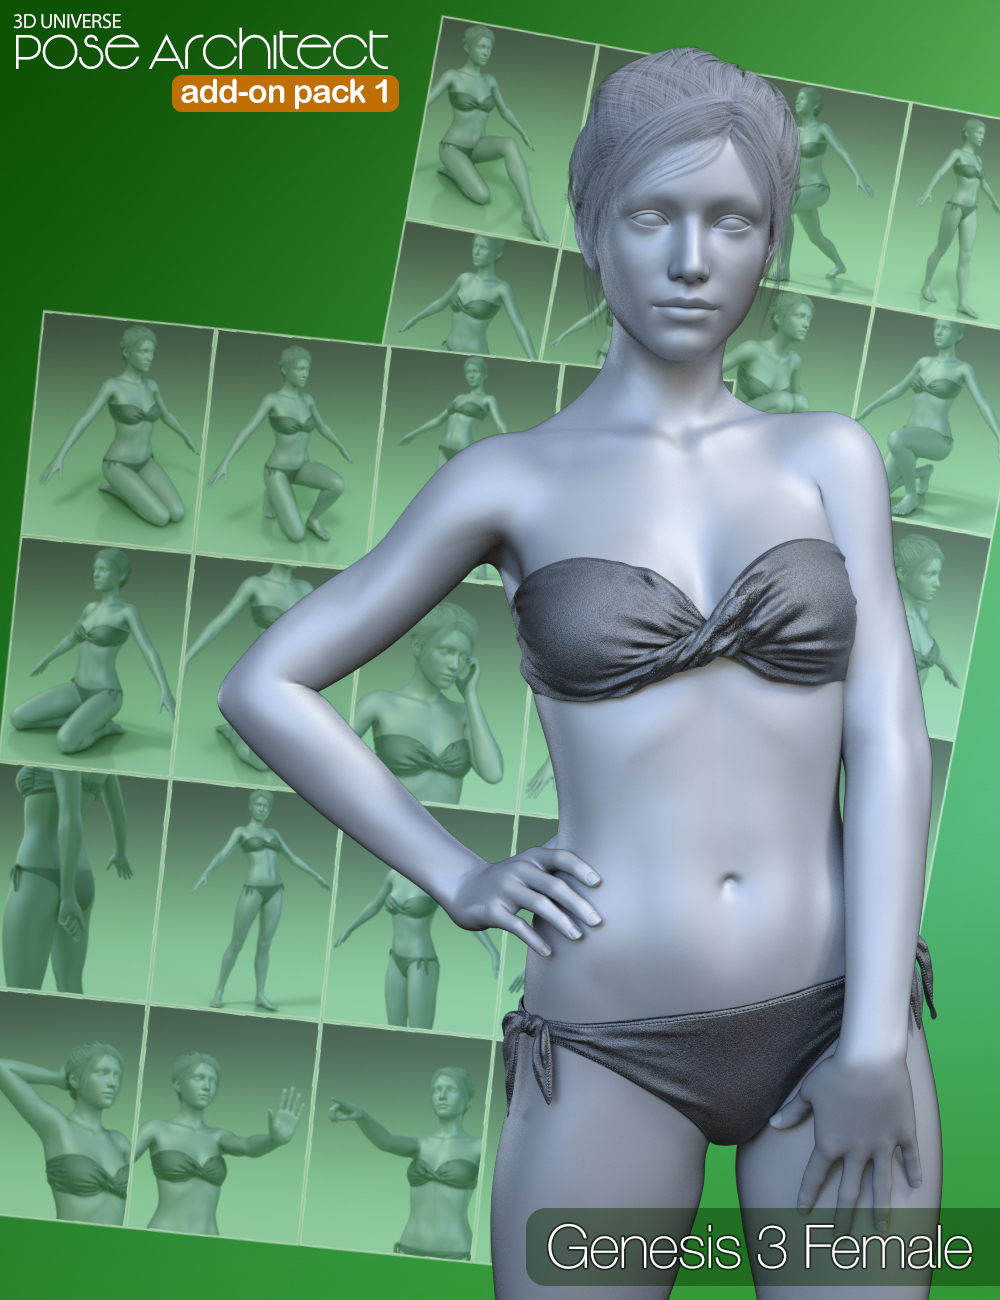 Pose Architect Add-on Pack 1 for Genesis 3 Female(s) by: 3D Universe, 3D Models by Daz 3D